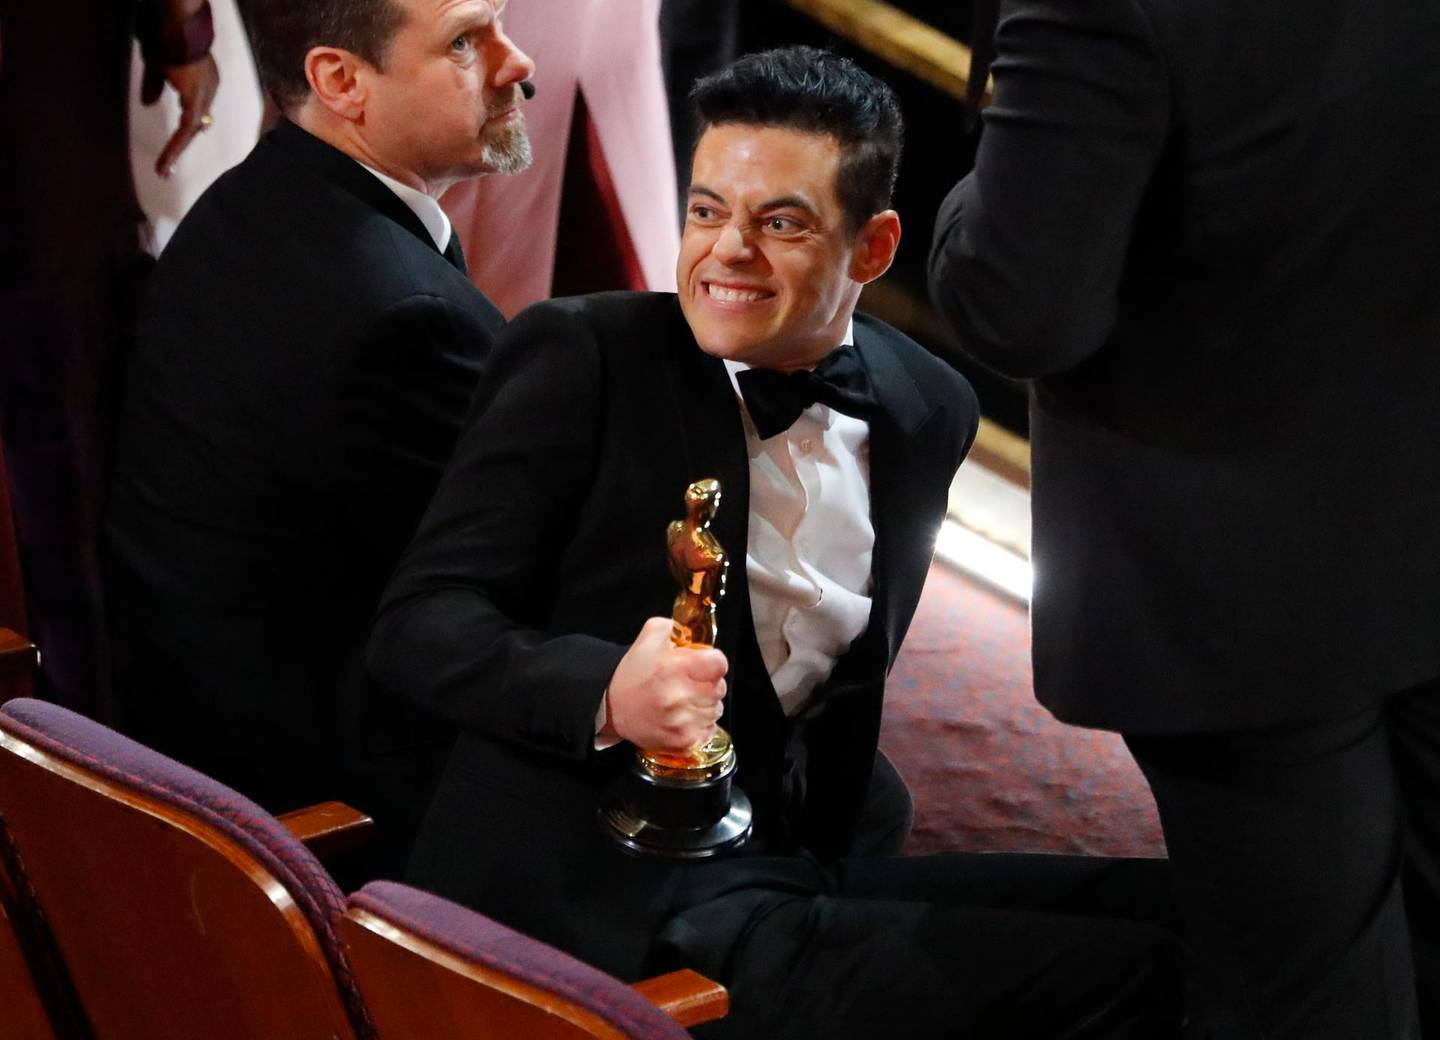 91st Academy Awards - Oscars Show - Hollywood, Los Angeles, California, U.S., February 24, 2019. Rami Malek holds his Best Actor Oscar as he reacts after the show concluded. REUTERS/Mike Blake